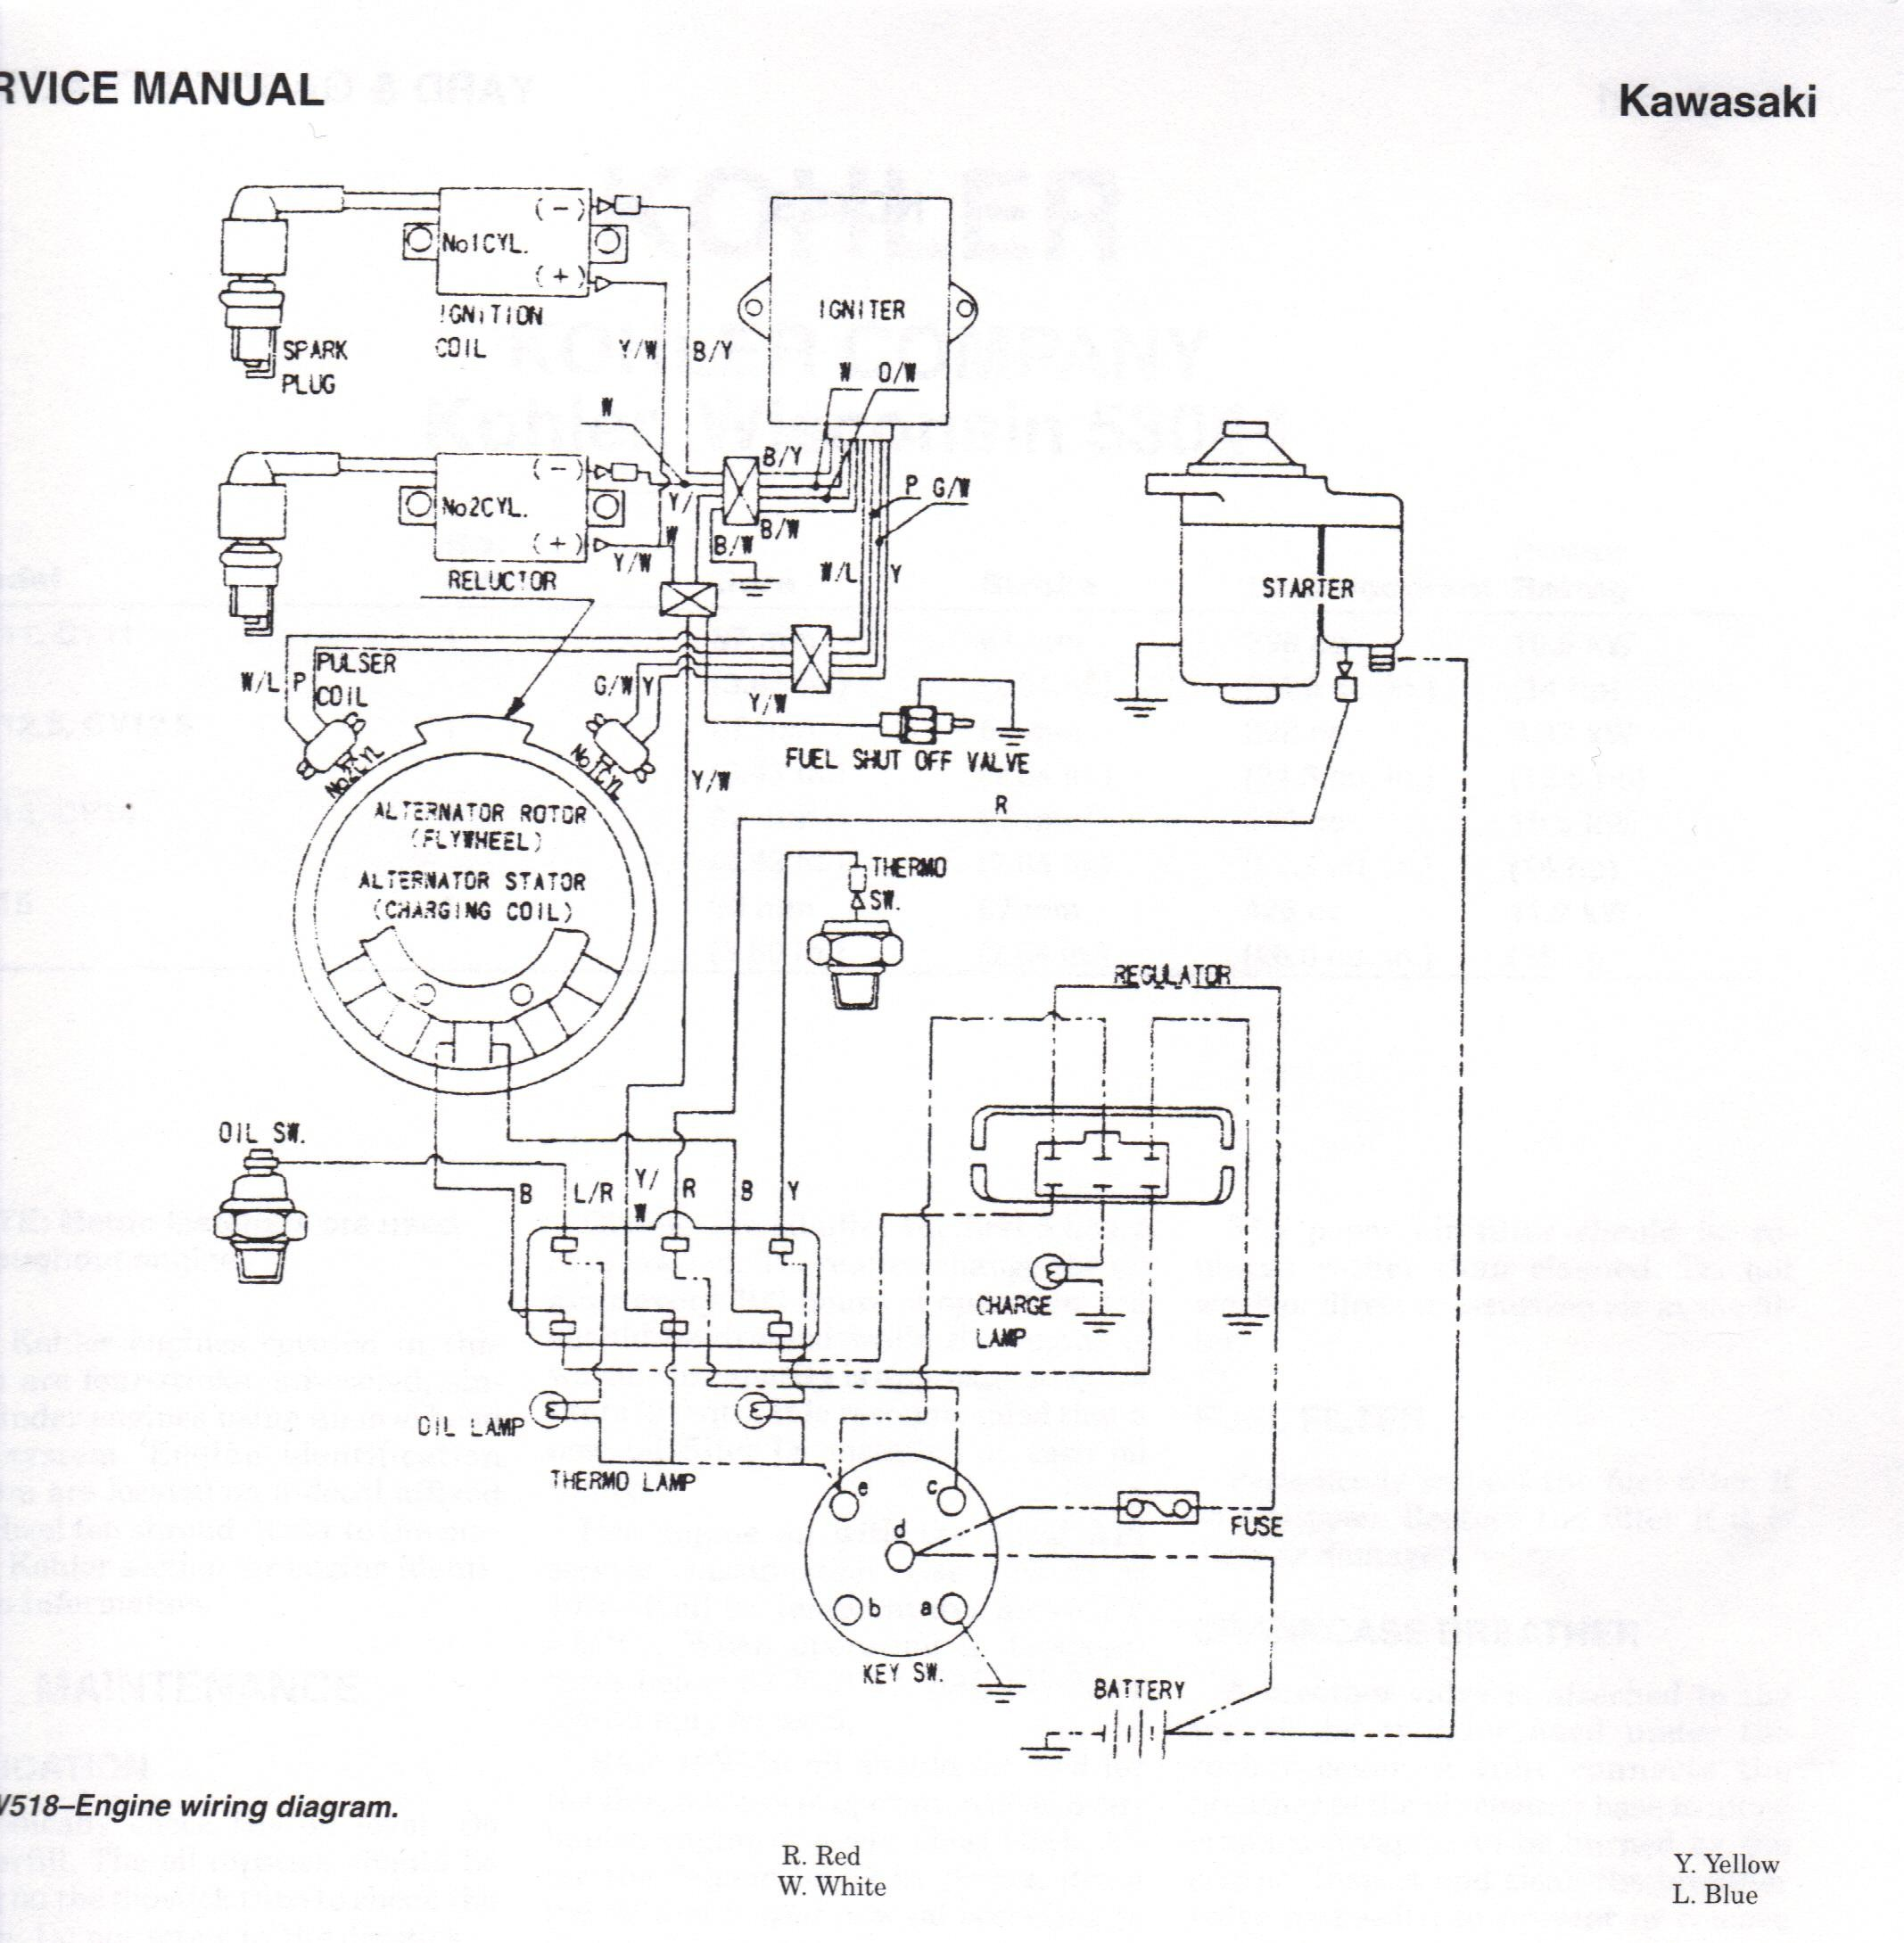 john deere gator 6x4 wiring schematic best deer photos water rh water alliance org